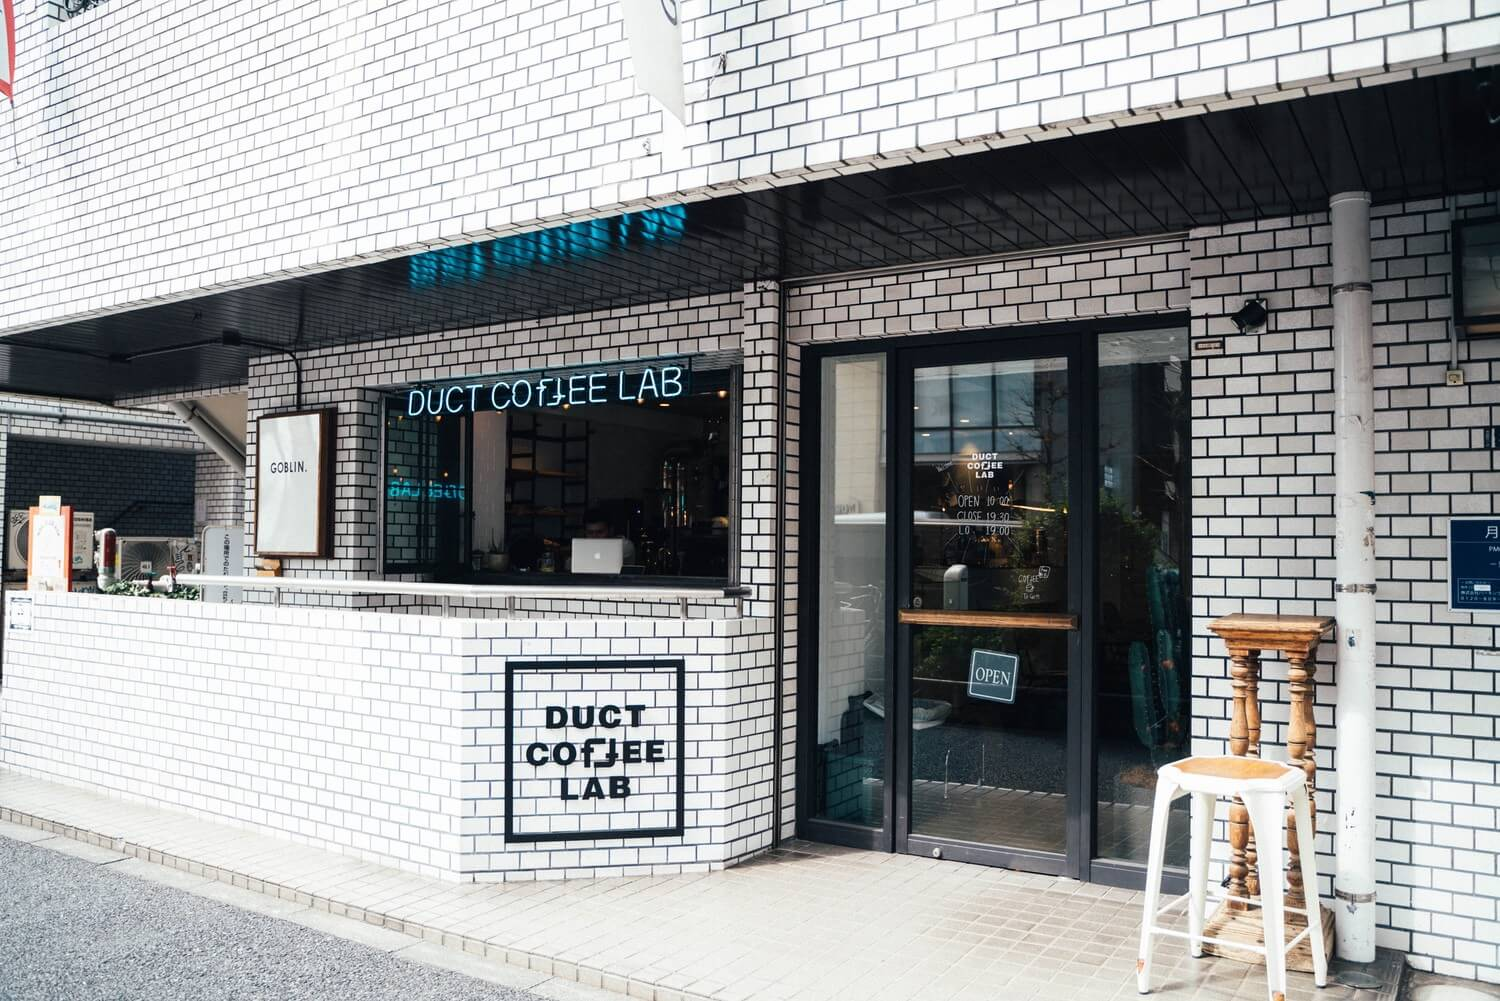 Daikanyama duct coffee lab 0010